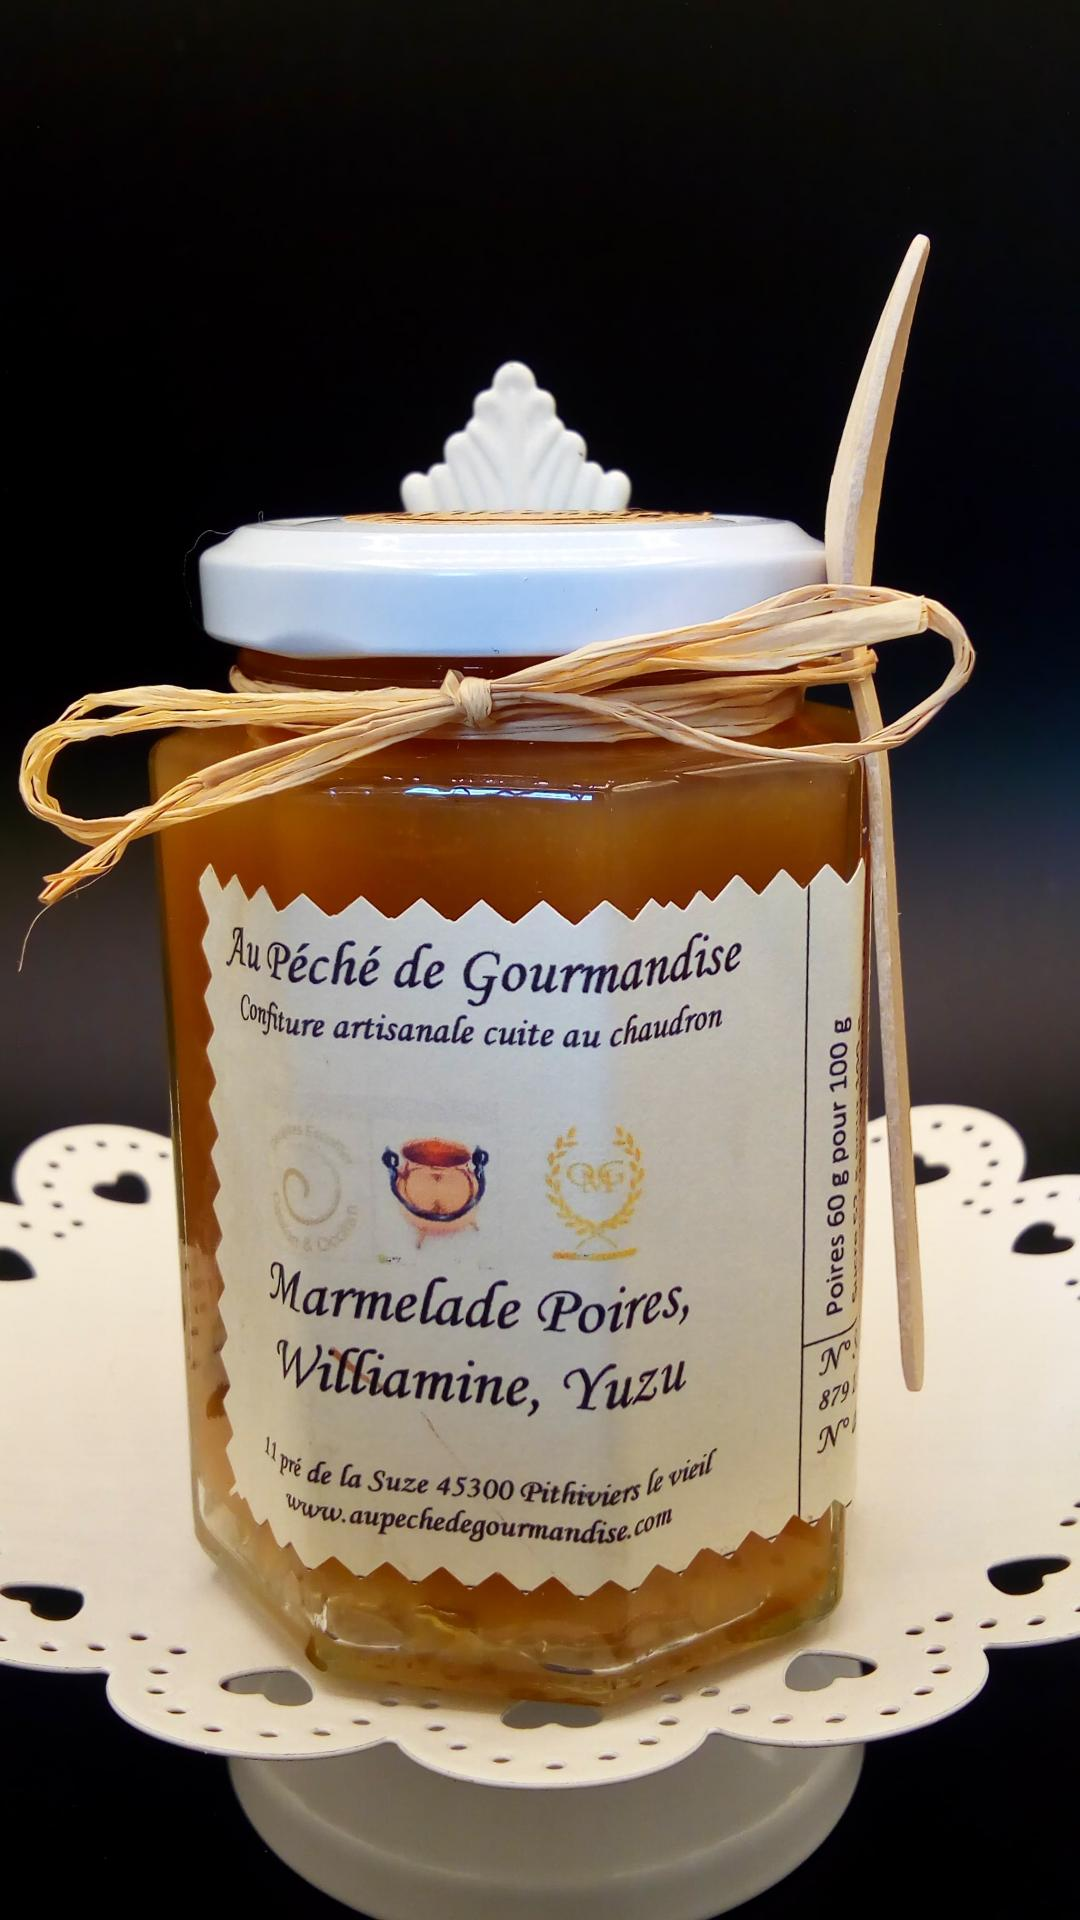 Marmelade poires williamine yuzu